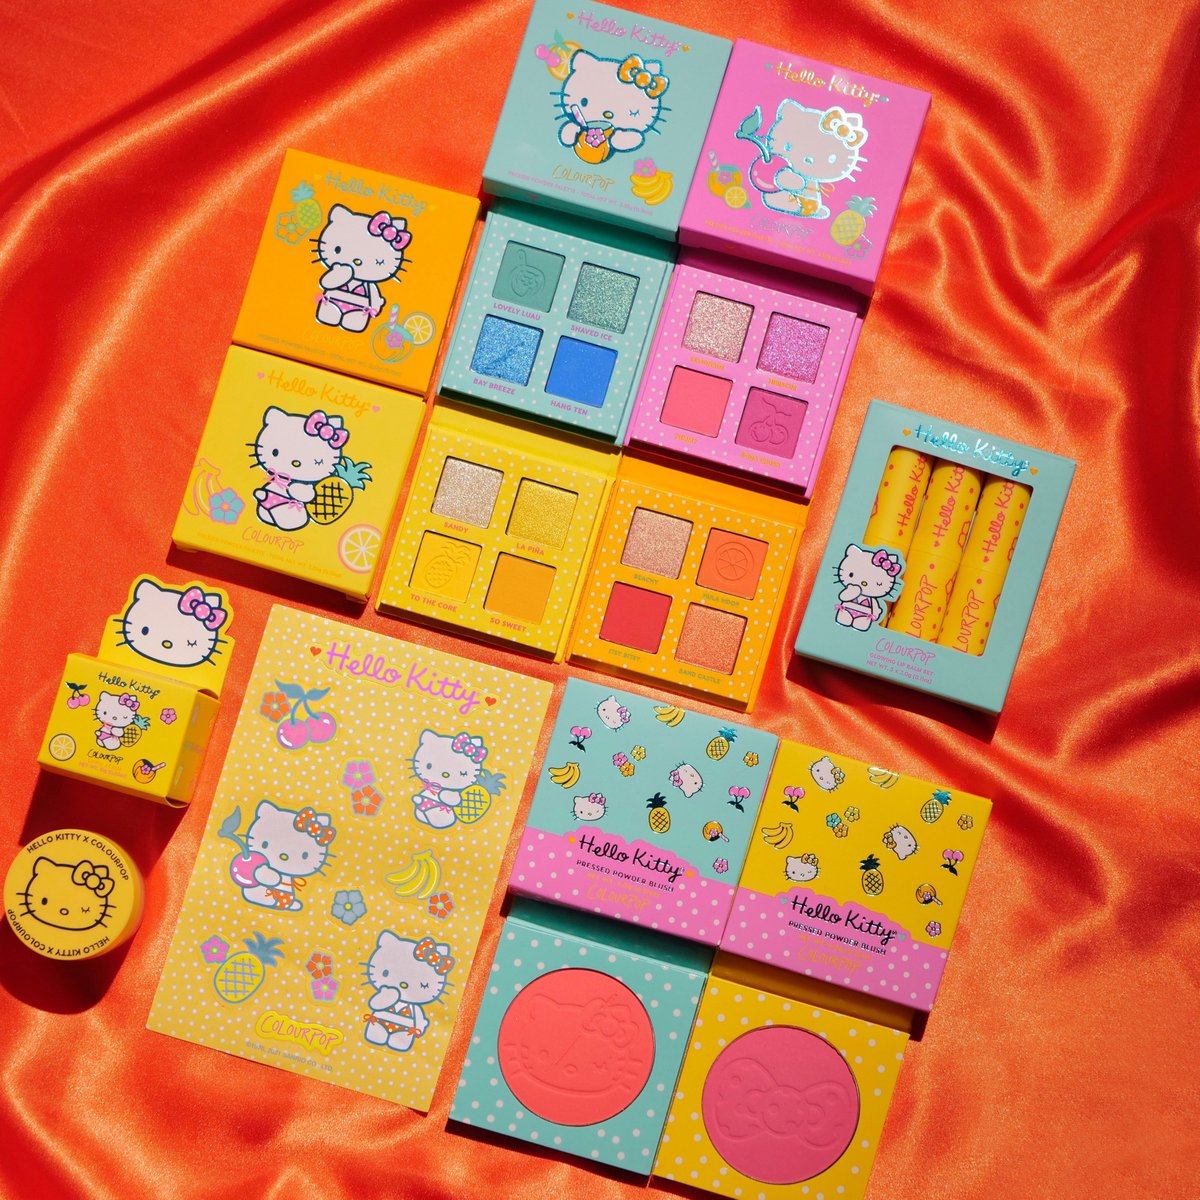 🌴☀️ The @hellokitty Tropical Escape Collection is AVAILABLE NOW on https://t.co/5C9dbszKrN + https://t.co/sq8E7HkvCj!   🍒  4 NEW 4 pan eyeshadow palettes 🍌 2 Pressed Powder Blushes 🍦 Glowing Lip Balm kit 🍍 Pineapple Lip Scrub  #HelloKittyXColourPop https://t.co/0SihMPLg7g